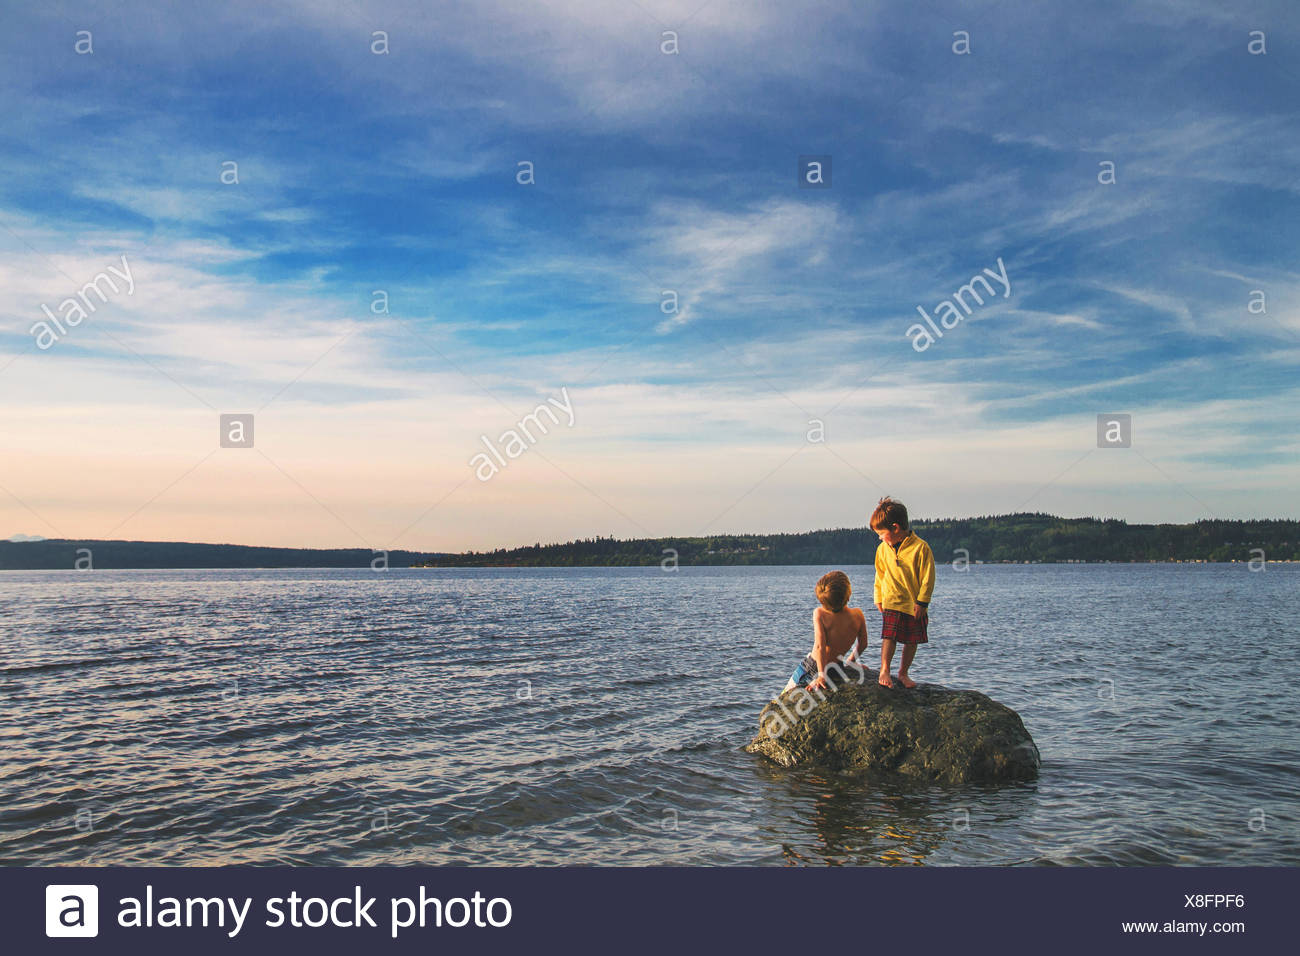 Two boys sitting on a rock in the sea - Stock Image